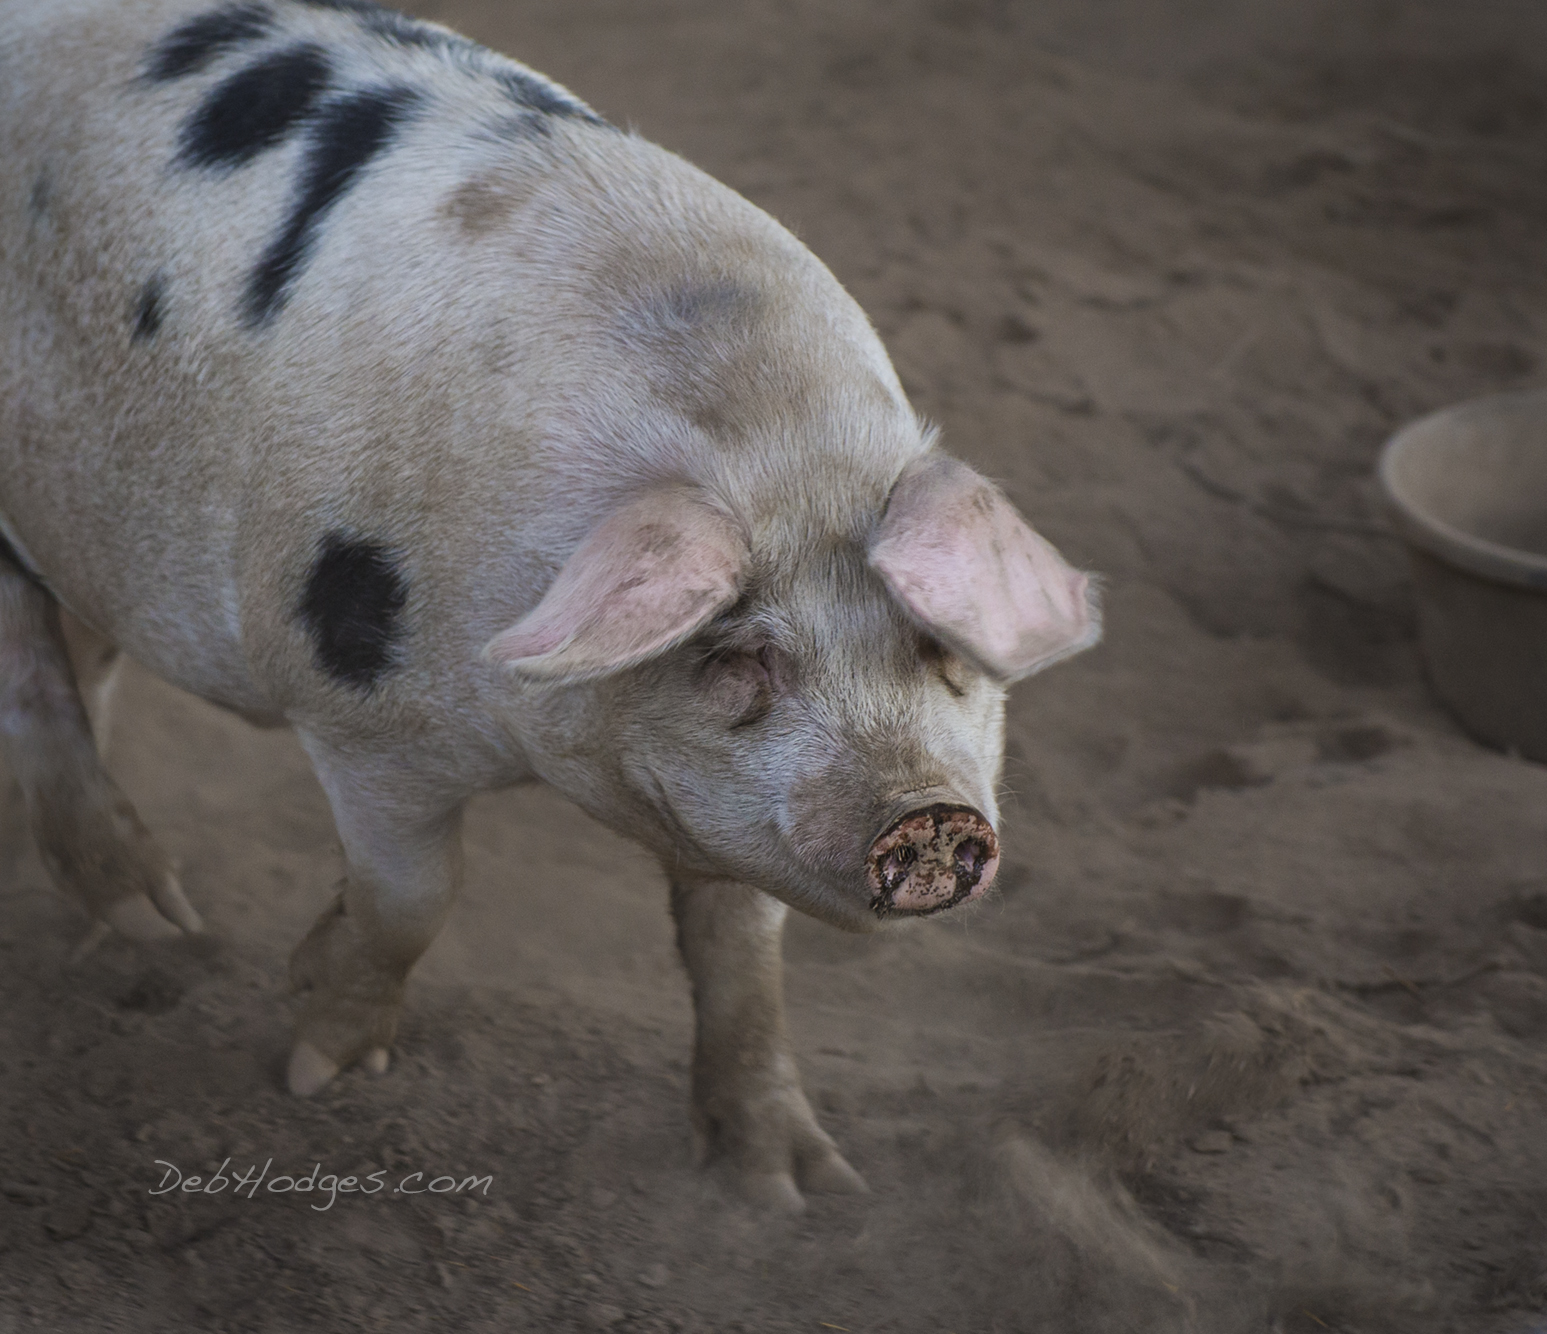 Old Spot pig photo by Deb Hodges 2015